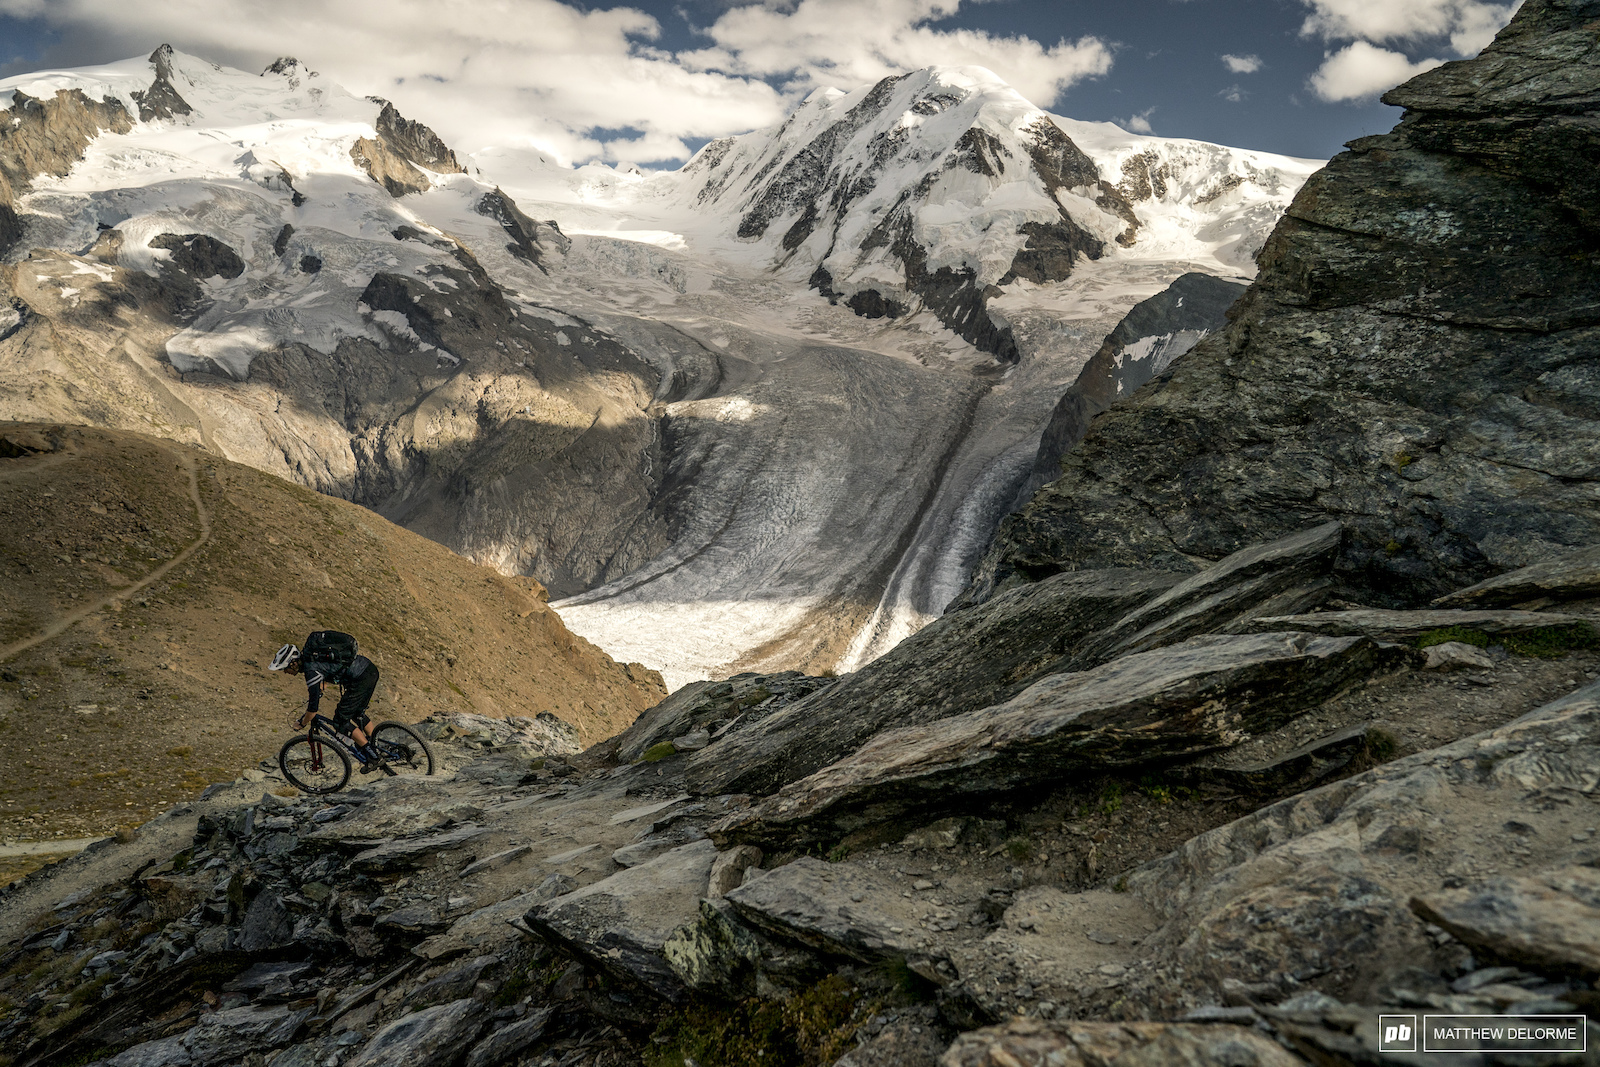 With Monte Rosa looking in the background TFR mechanic Andy Lund makes his way around a cliffed corner.